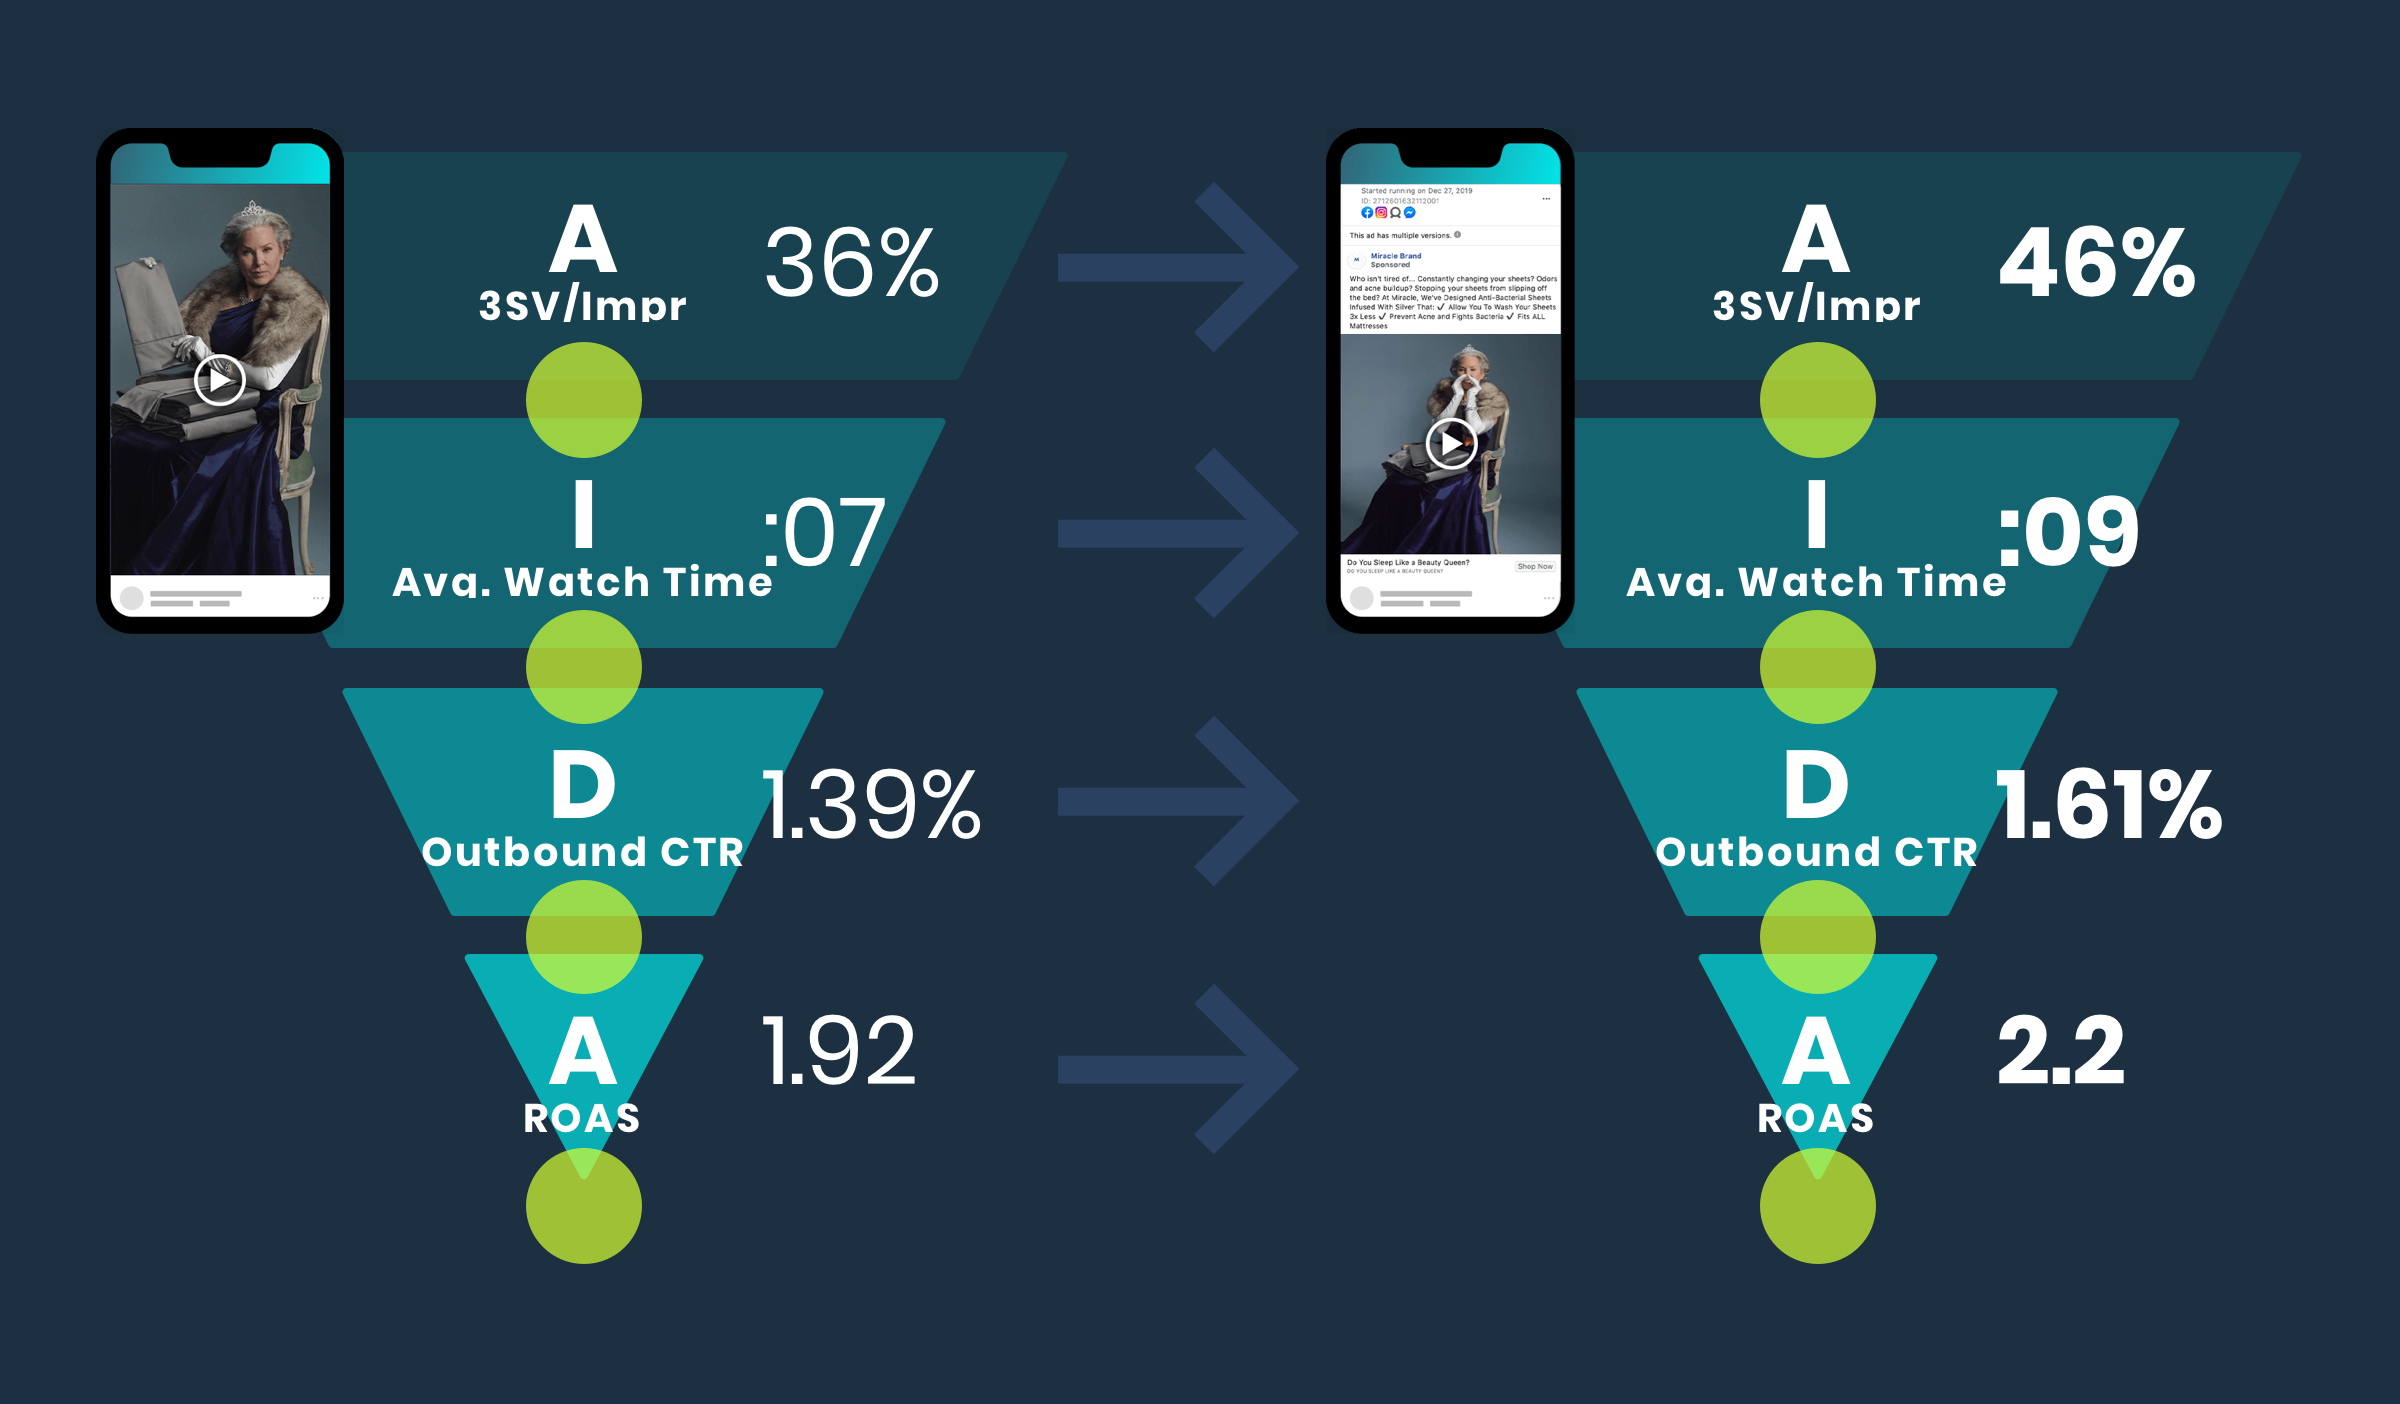 Compare the Miracle Brand ad results. 3-second views went from 36% to 46%, average watch time increased from 7 seconds to 9 seconds, the outbound CTR went from 1.39% to 1.61%, and ROAS increased from 1.92 to 2.2